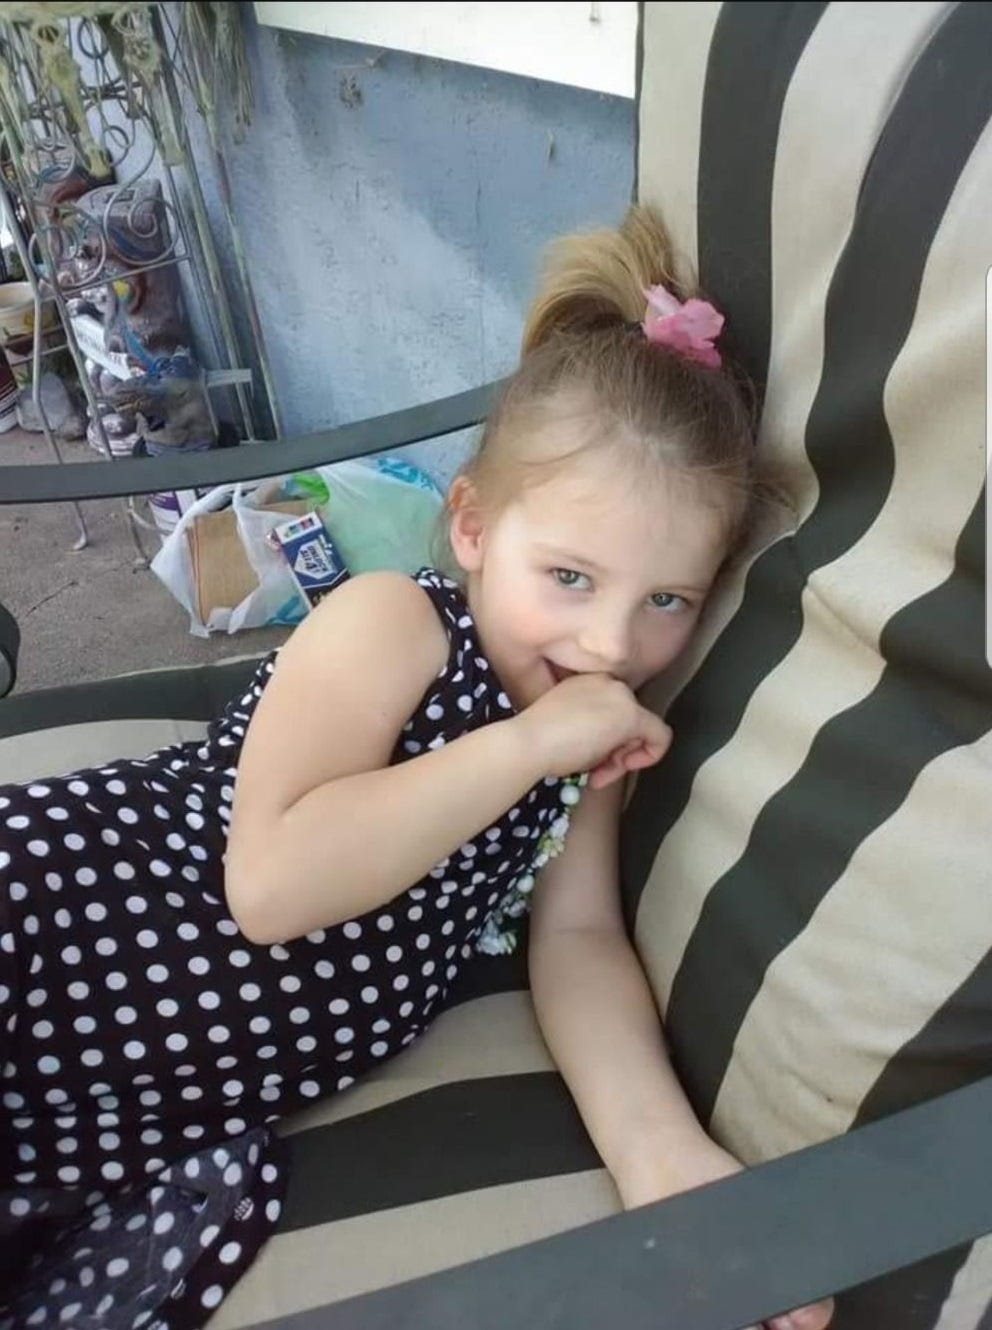 Emily Roberts, 4, died in the fire with her brother James, 5, and great grandmother, Melody Bledsoe, 70,